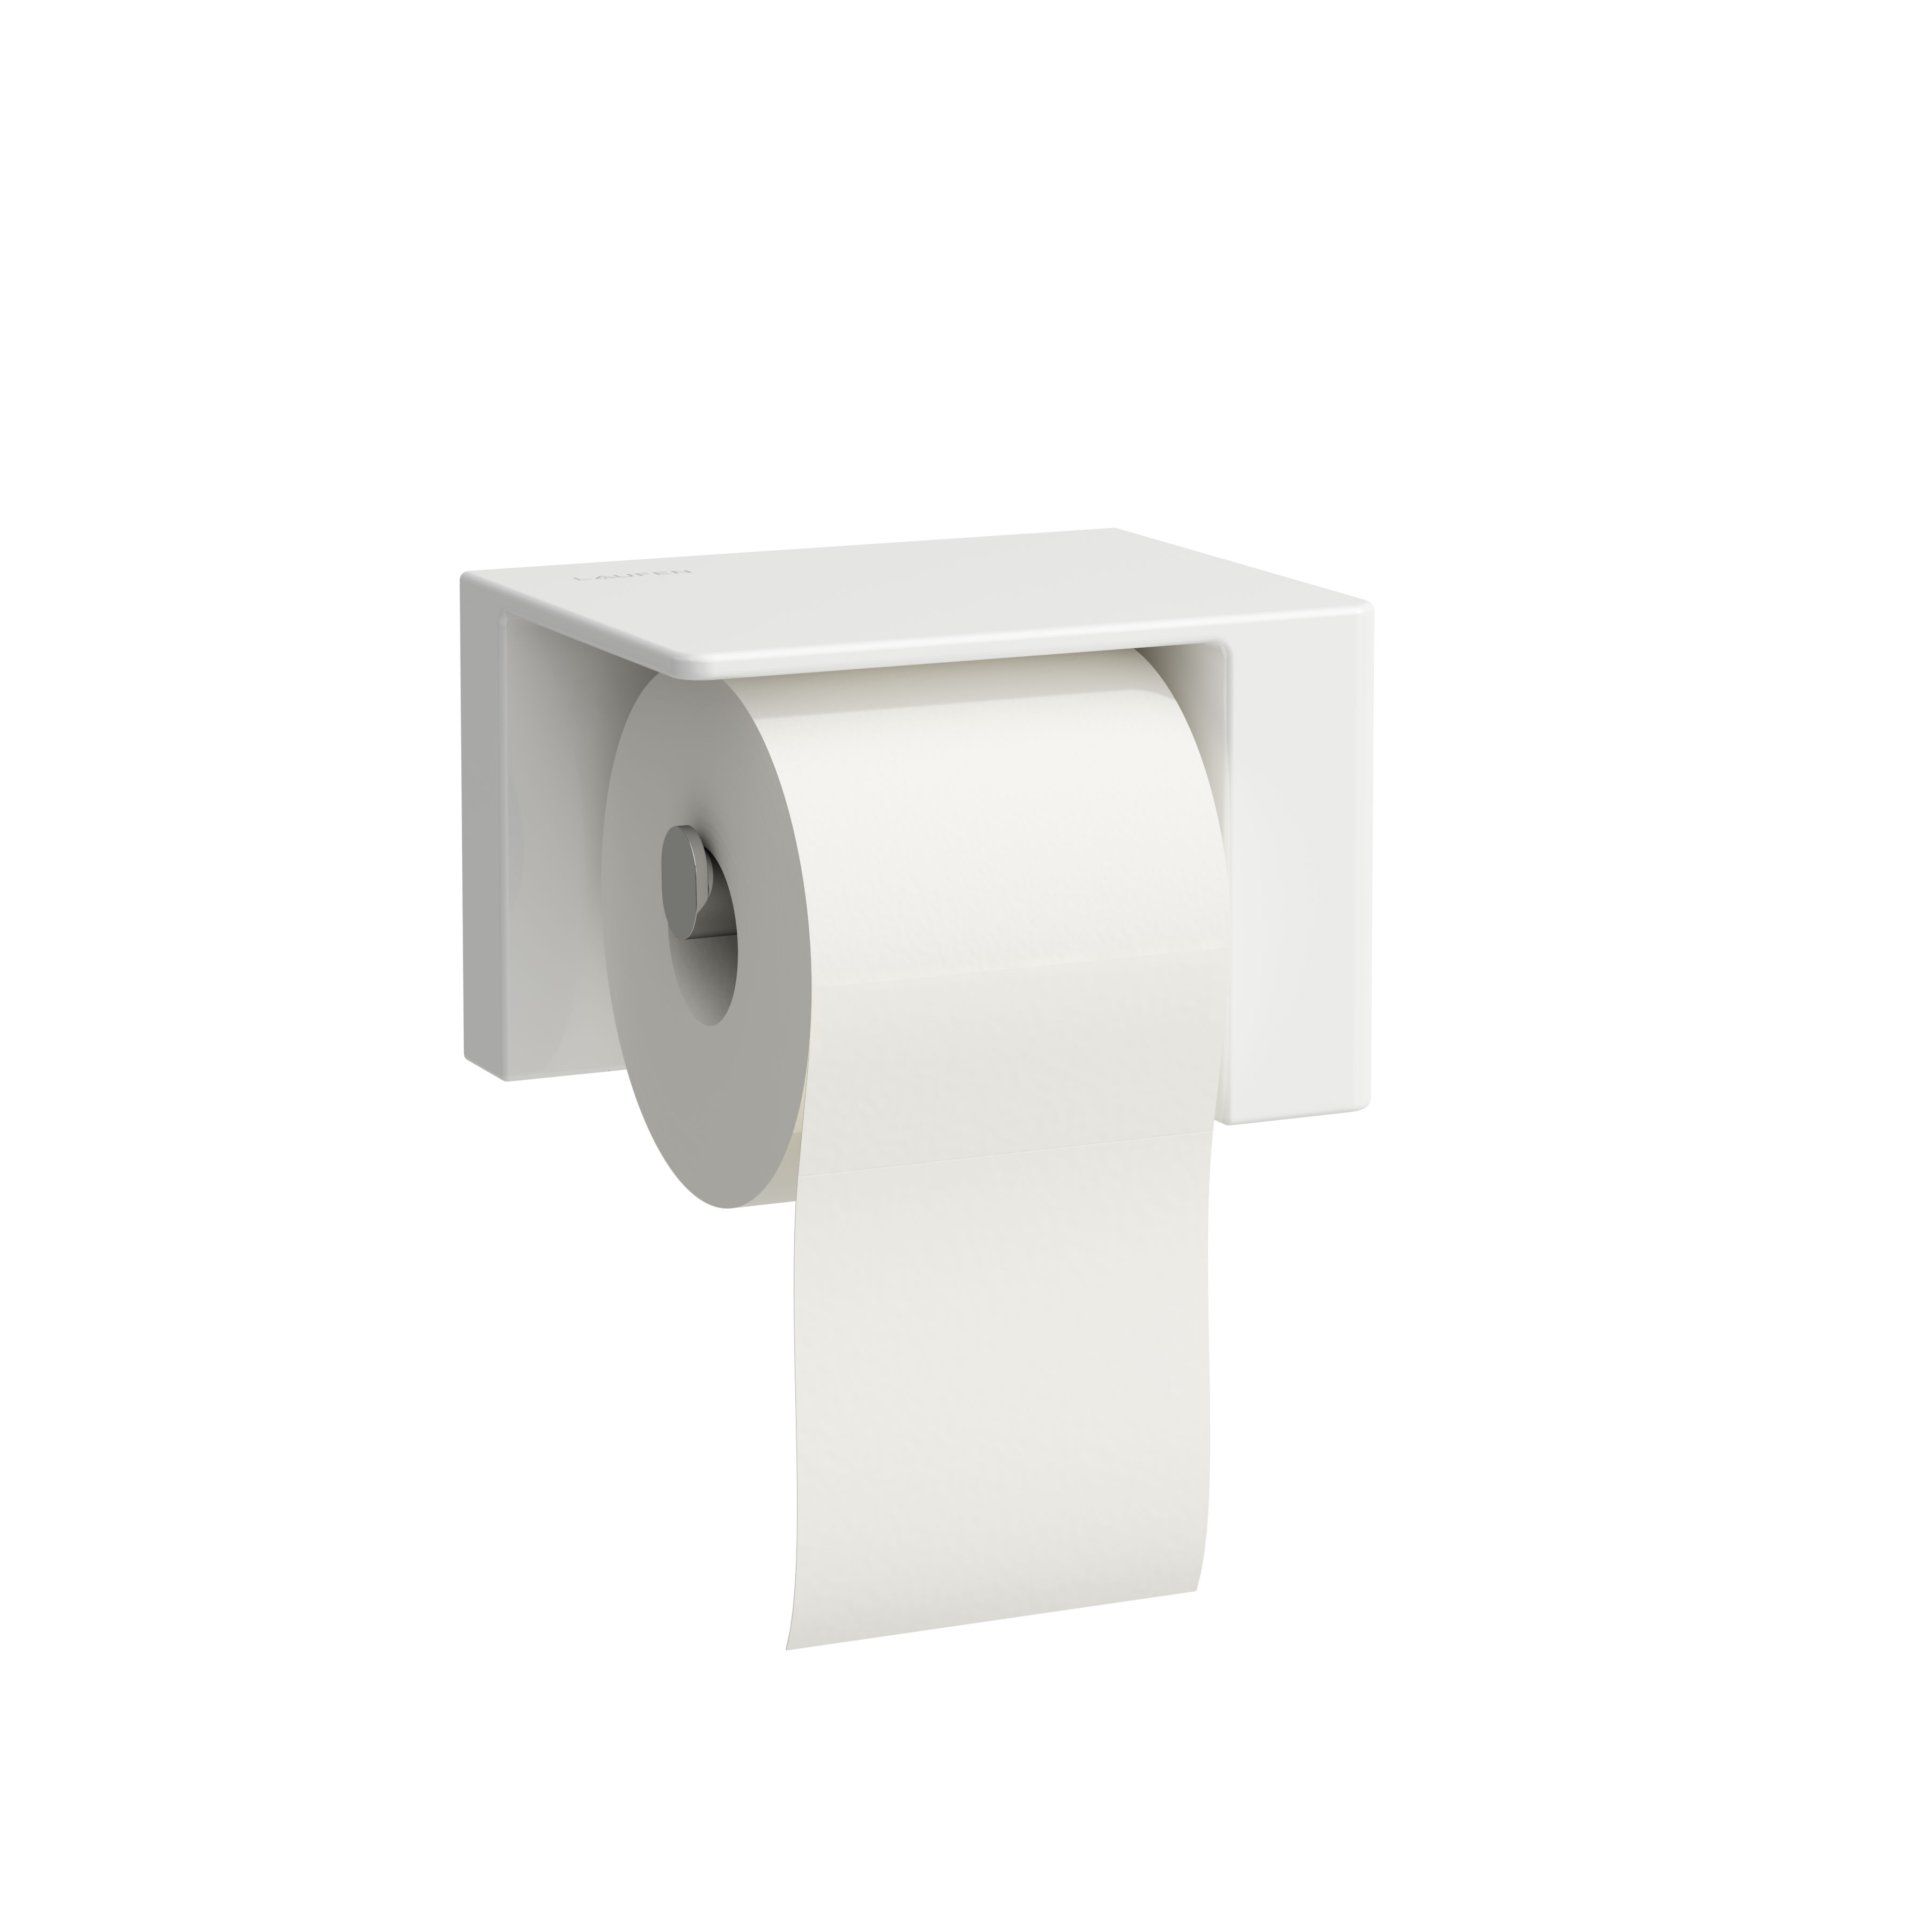 click on Toilet roll holder - Left image to enlarge